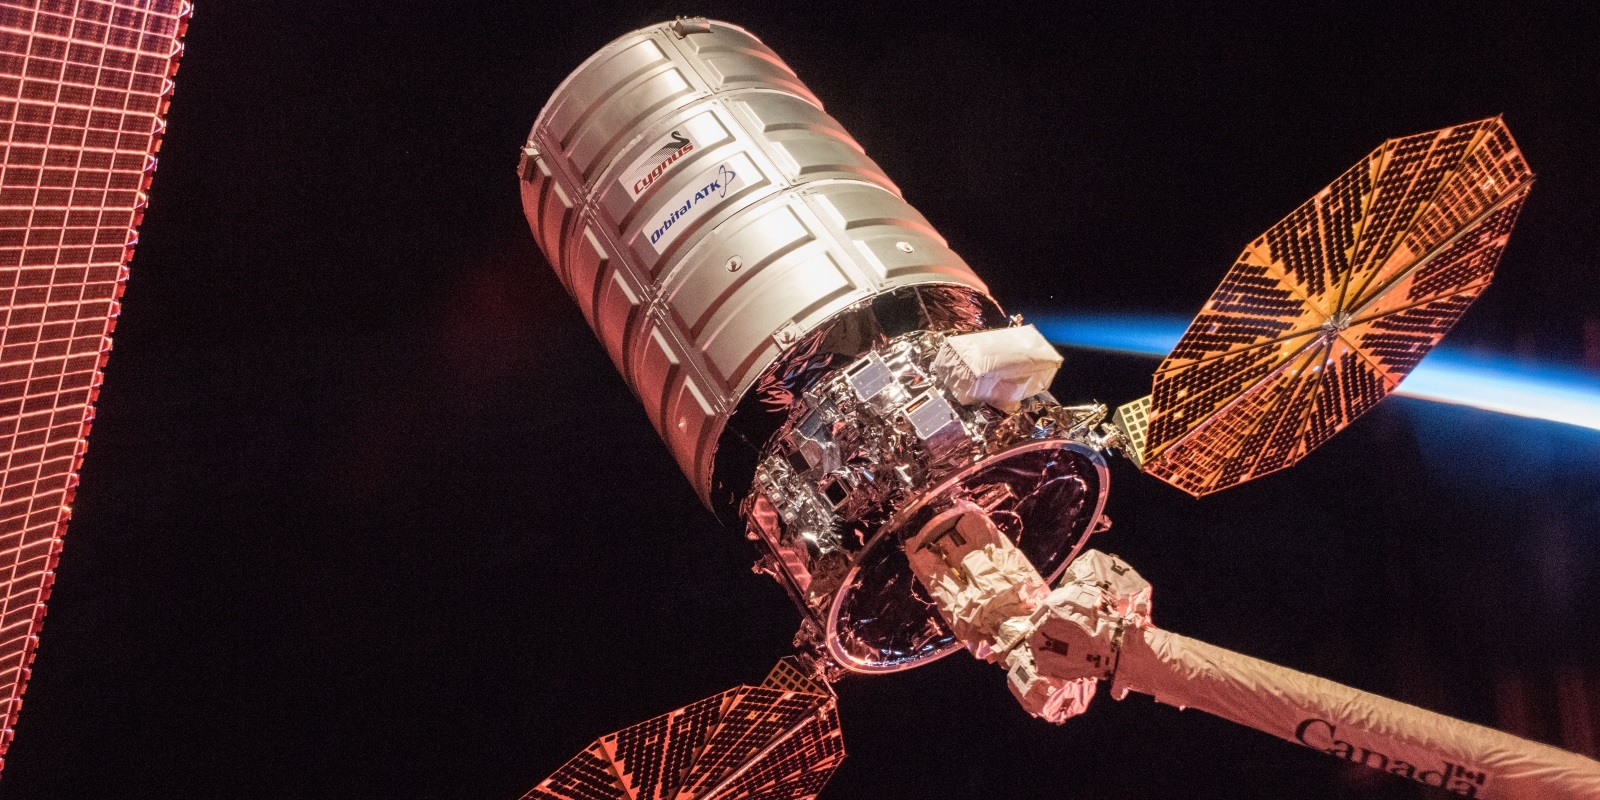 Cygnus OA-8 cargo spacecraft at sunrise